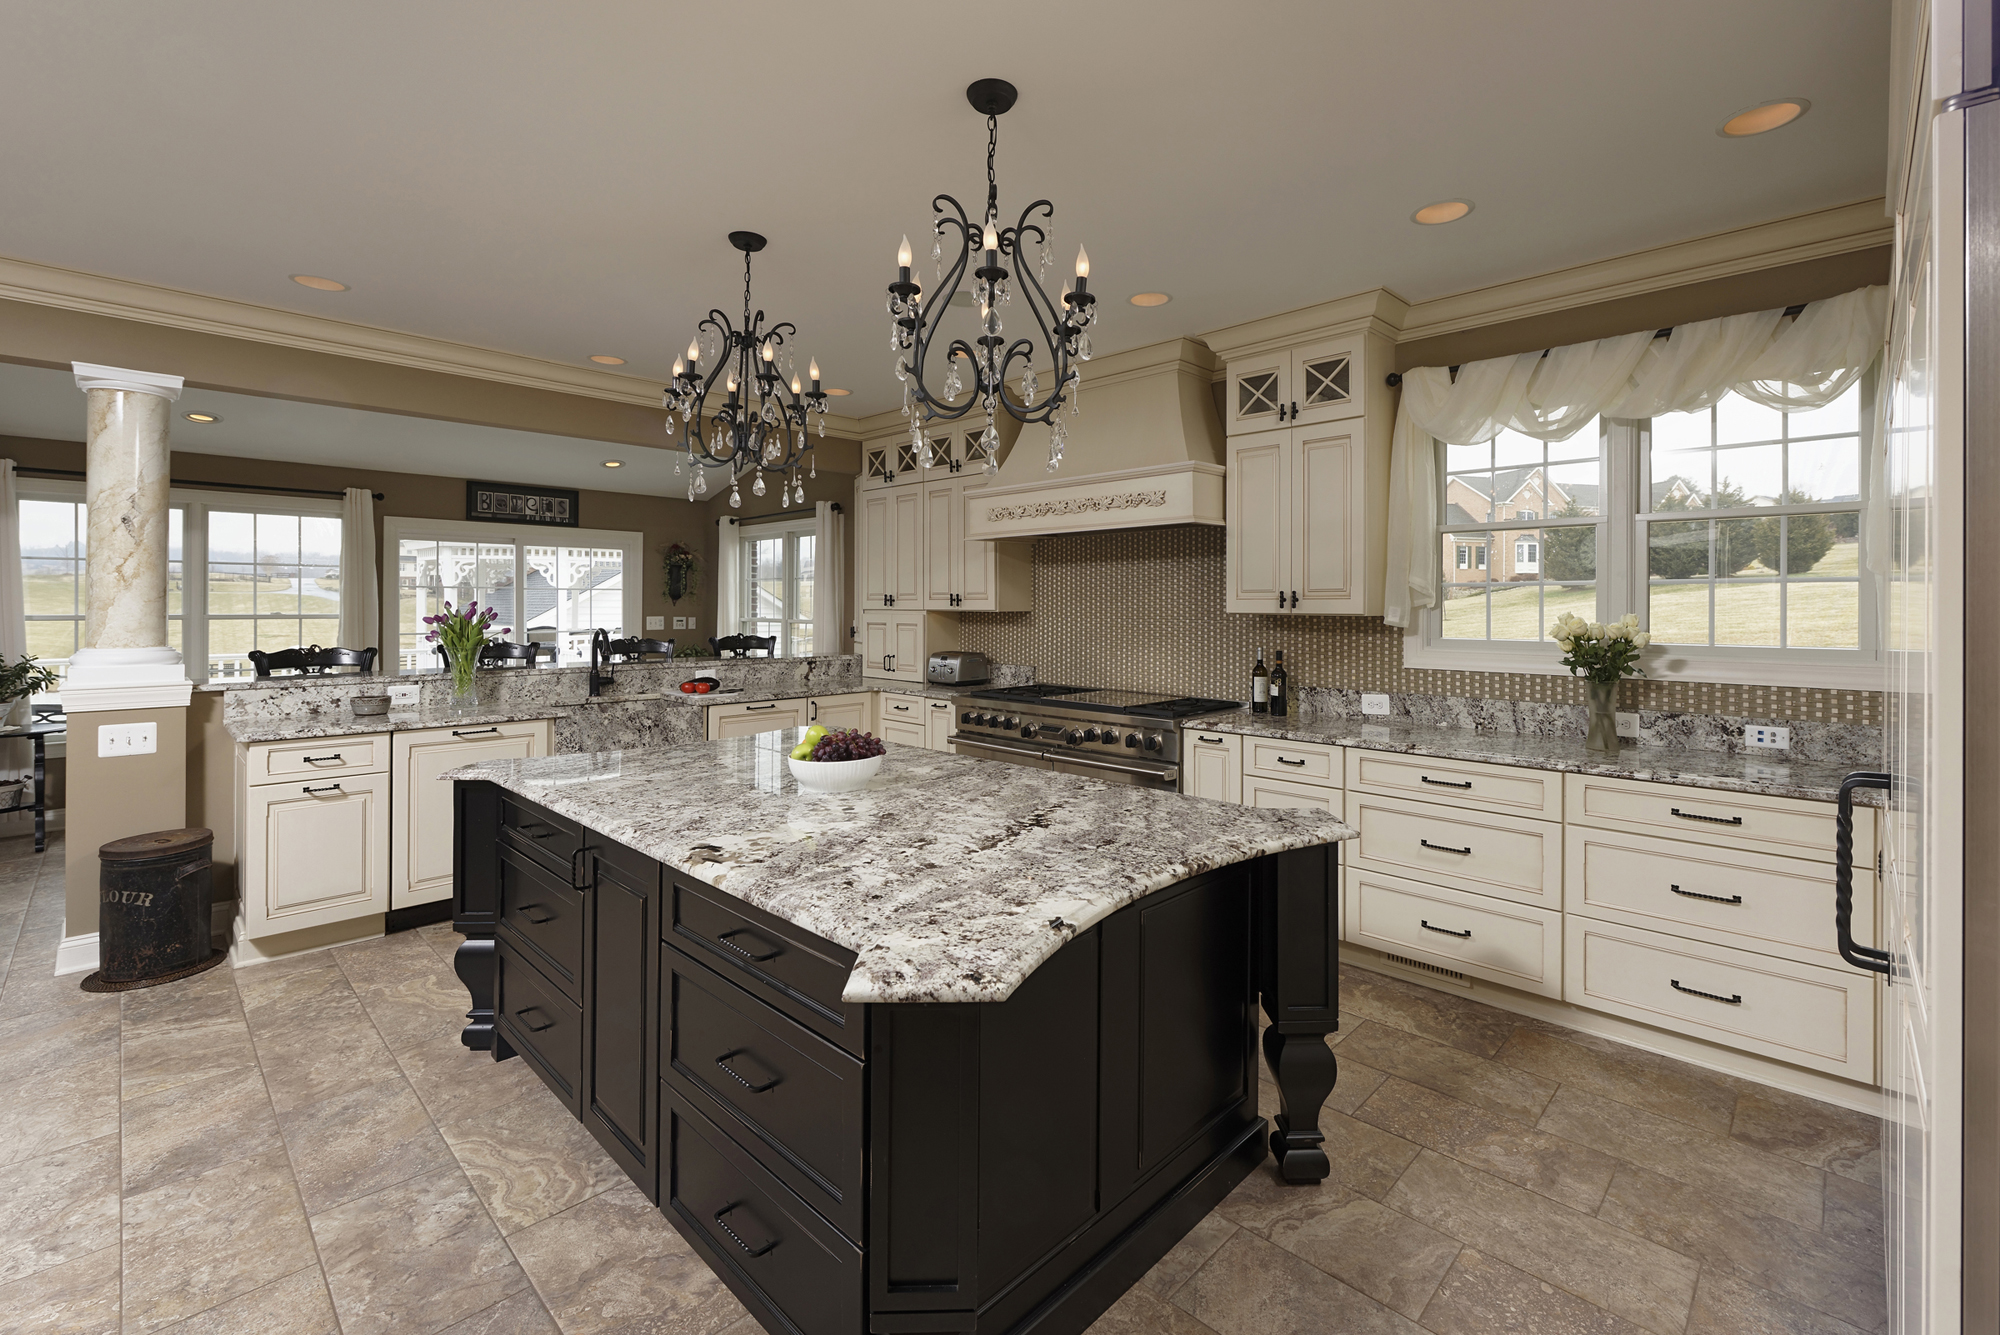 Kitchen Family Room Design Spectacular Kitchen Family Room Renovation In Leesburg Virginia